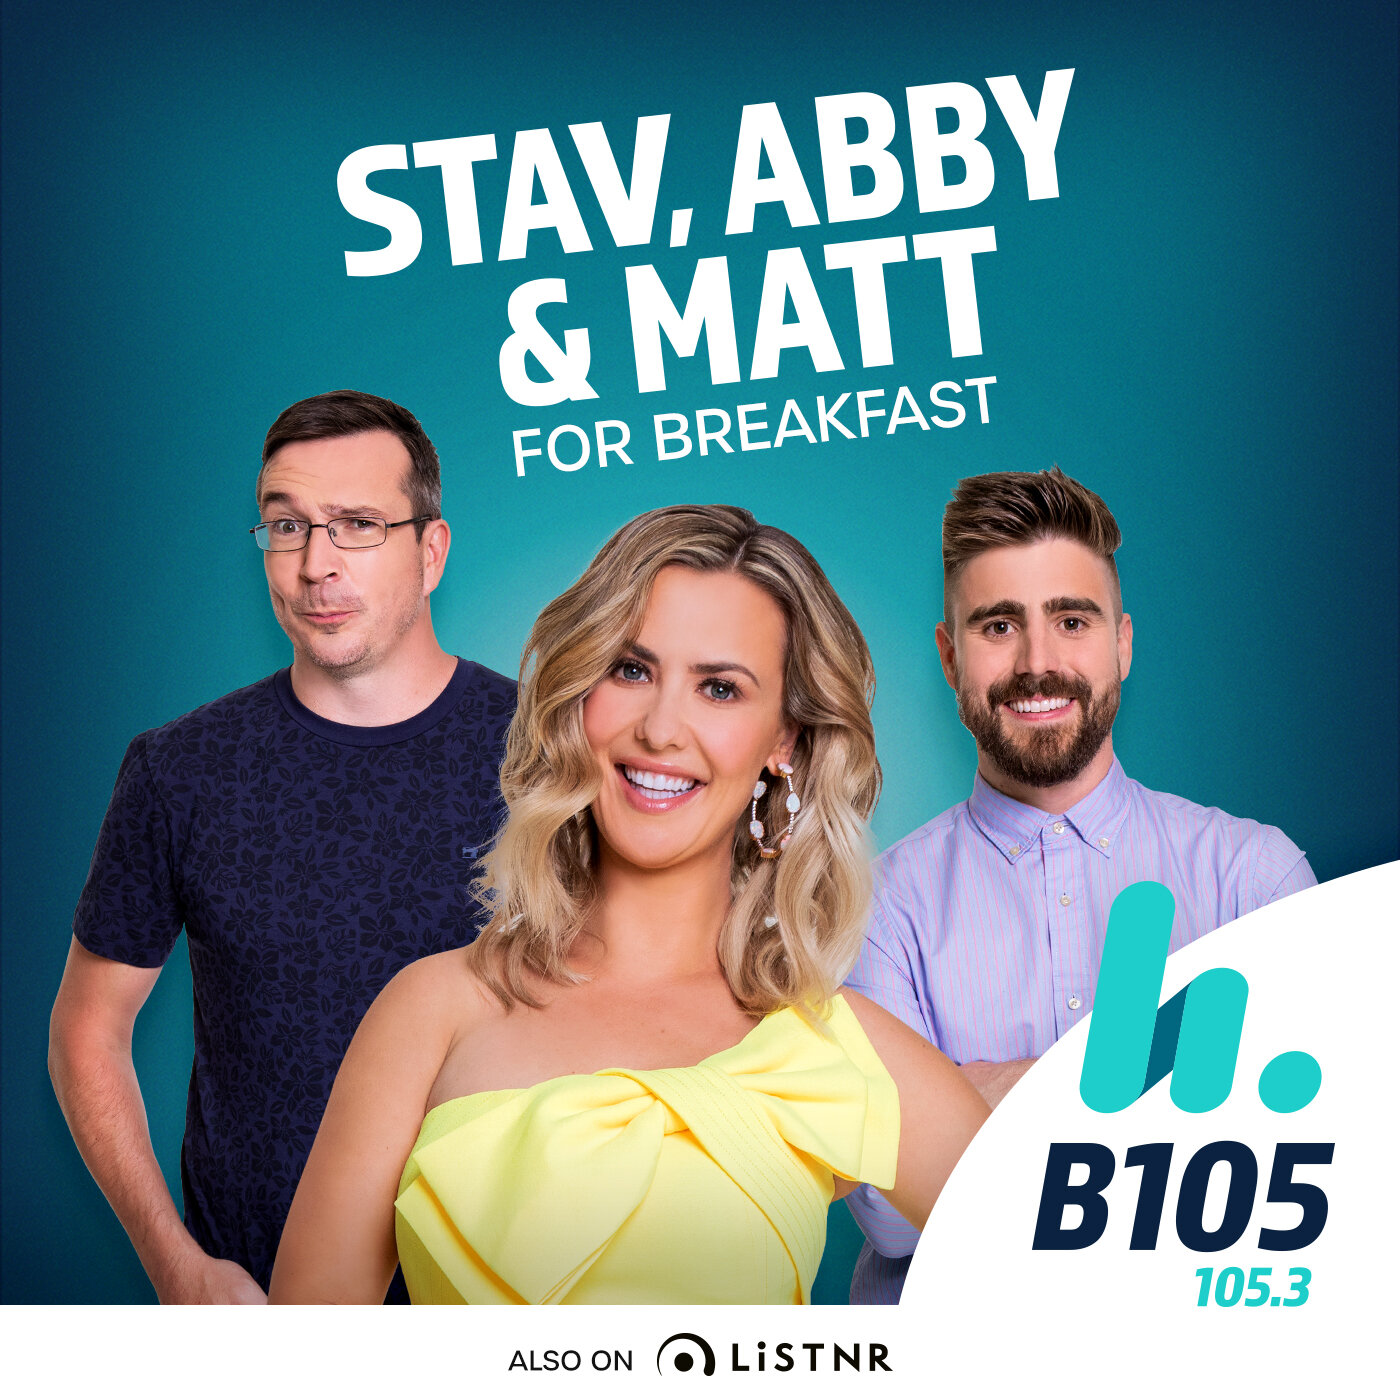 2018/03/12 - Stav Abby and Matt